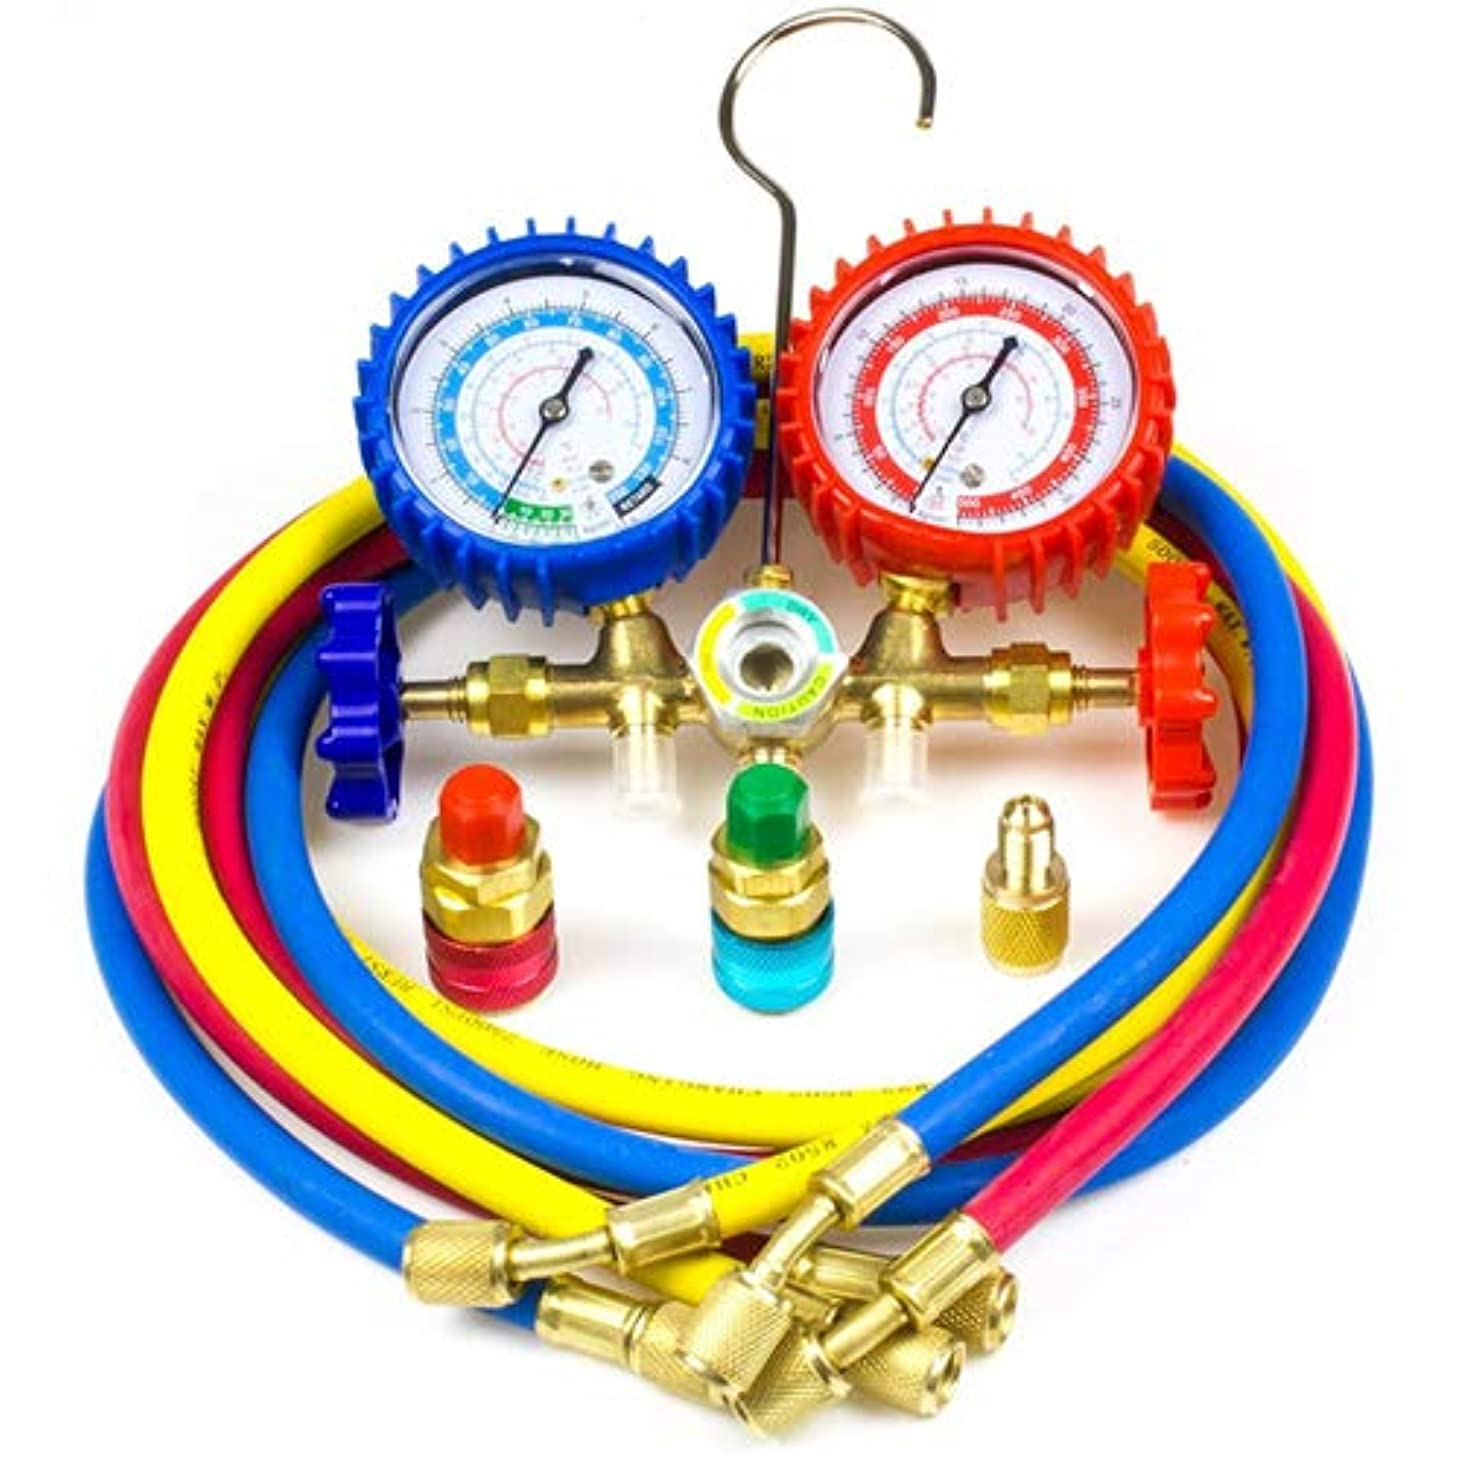 Ziss A/C Diagnostic Manifold Gauge Set for Refrigeration Charging, Fits R12 R22 R134a R502 Refrigerants with Couples, 5FT Hoses, Straight Adapter